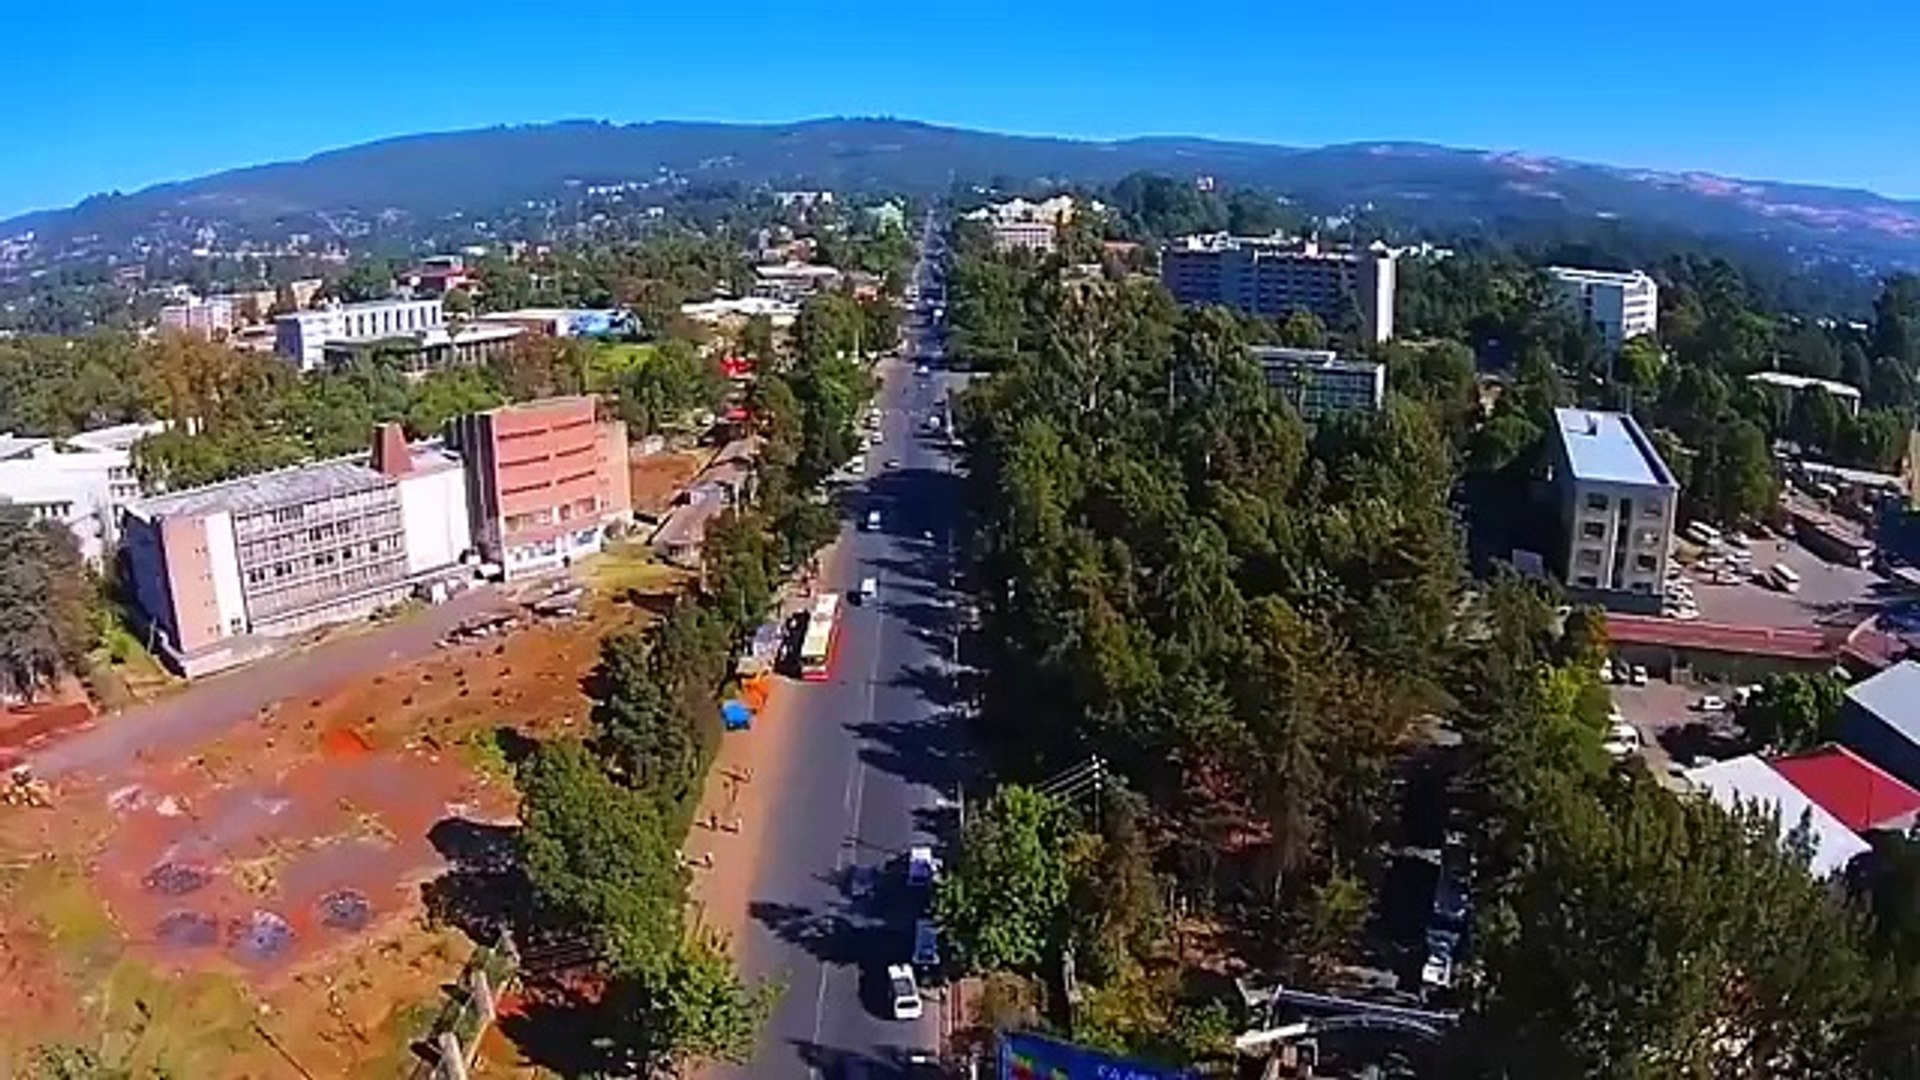 Tour Addis Ababa -drone footage of Addis Ababa ኣዲስ ኣበባን በድሮን July 2016